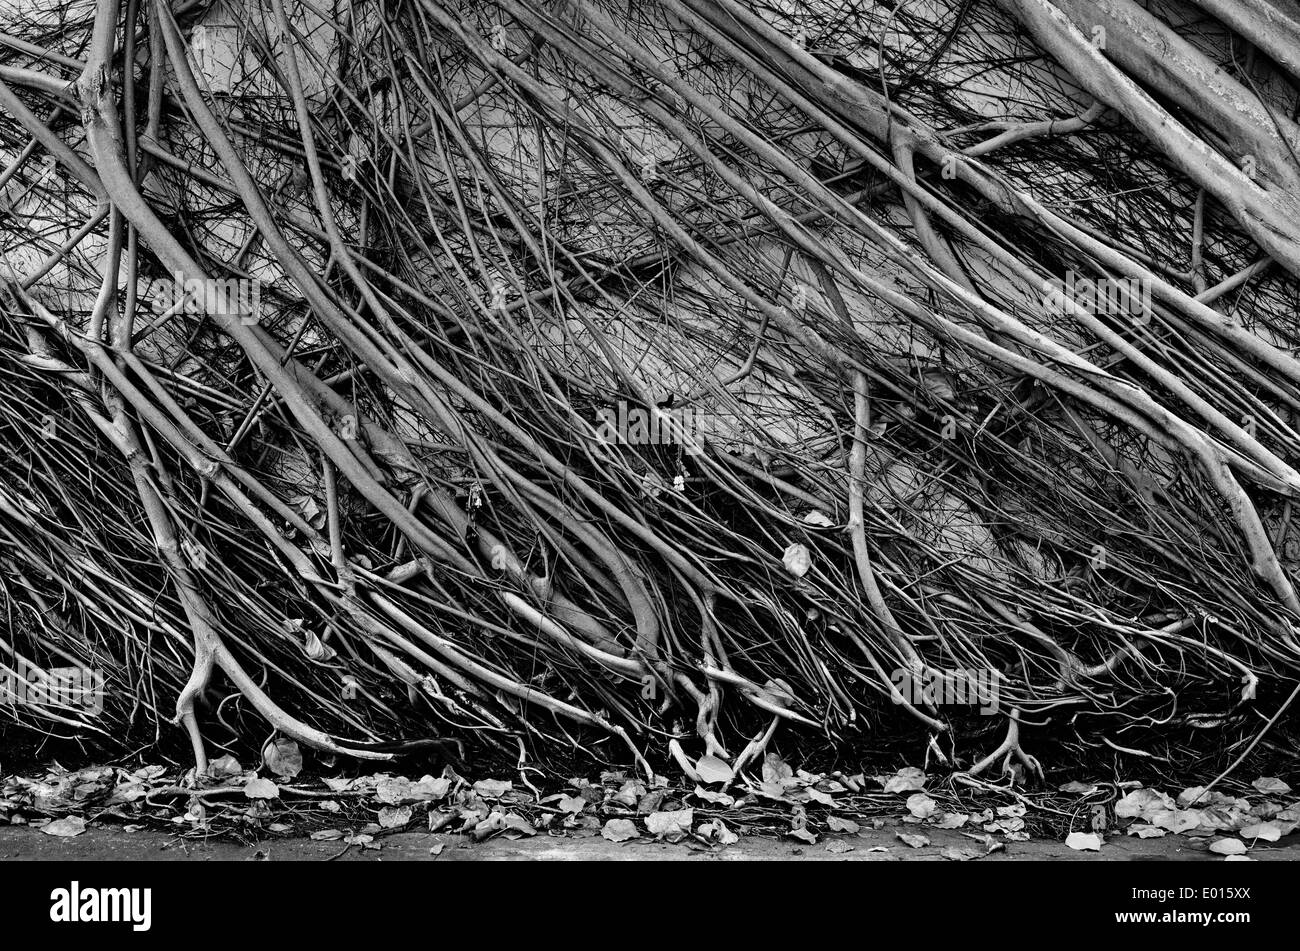 A black and white photograph of A Bhodhi tree roots growing on a wall, slanted. - Stock Image